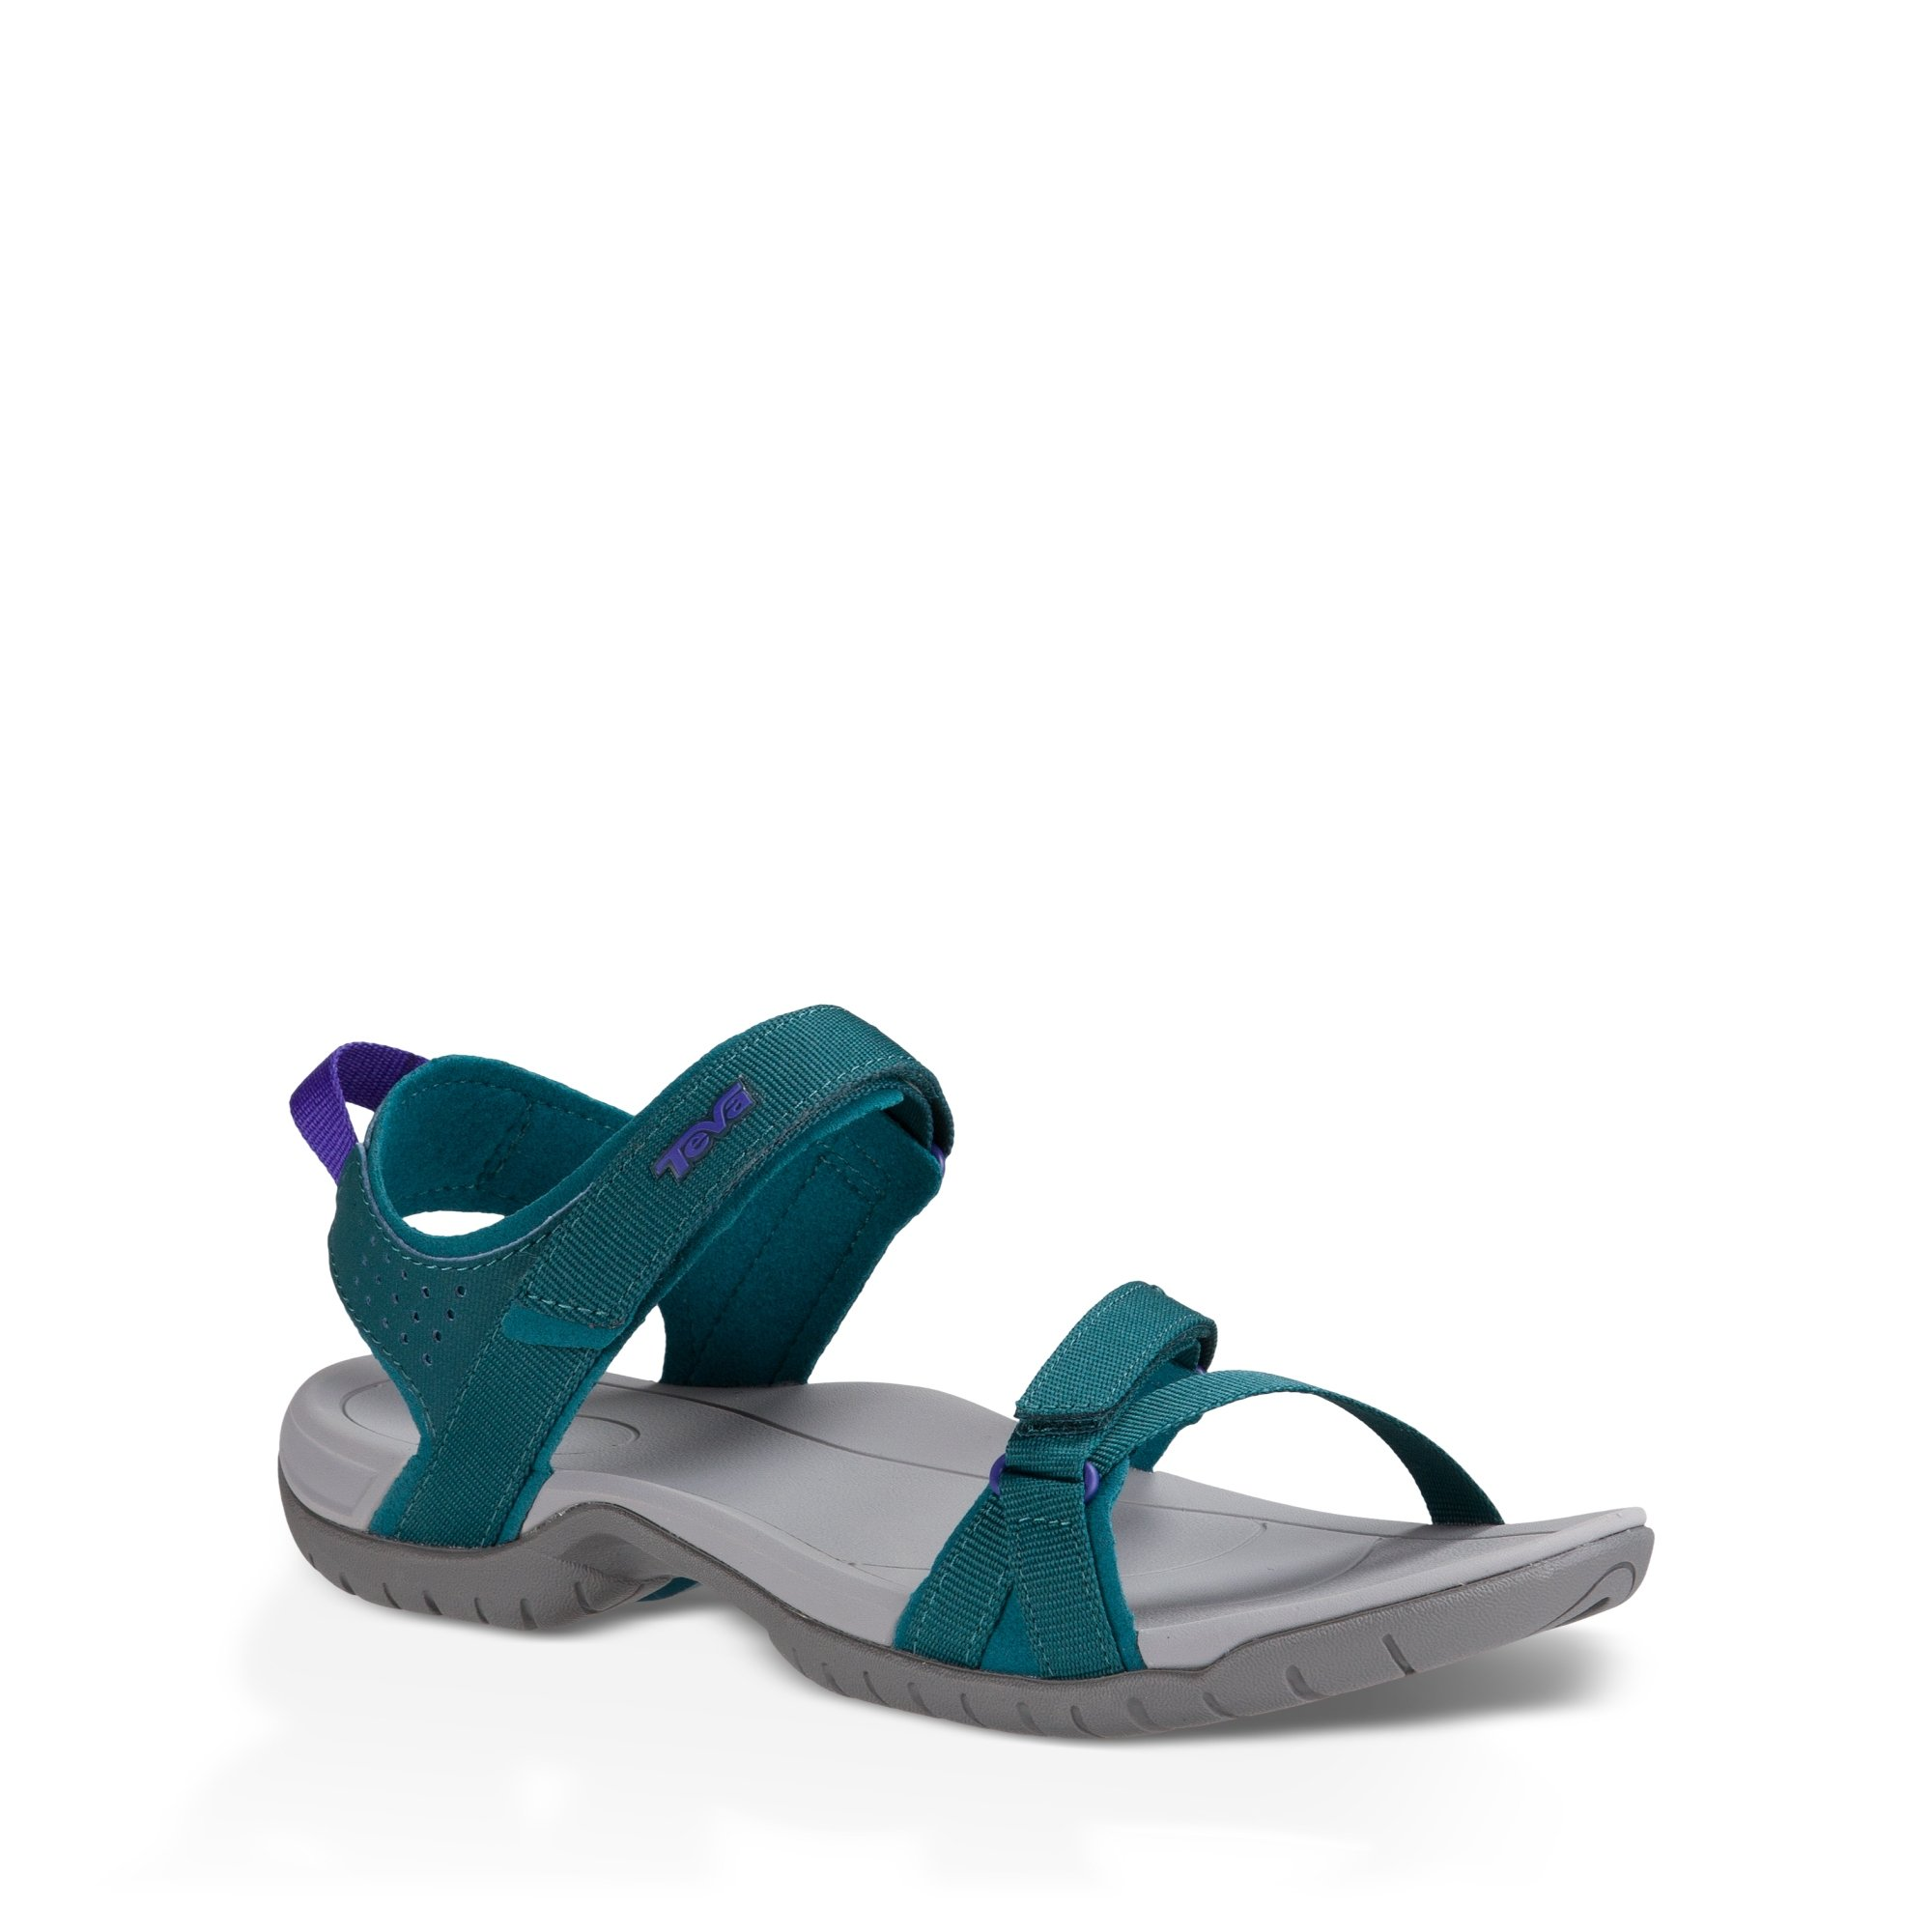 Teva Verra Sandal Women's Hiking 8.5 Deep Teal by Teva